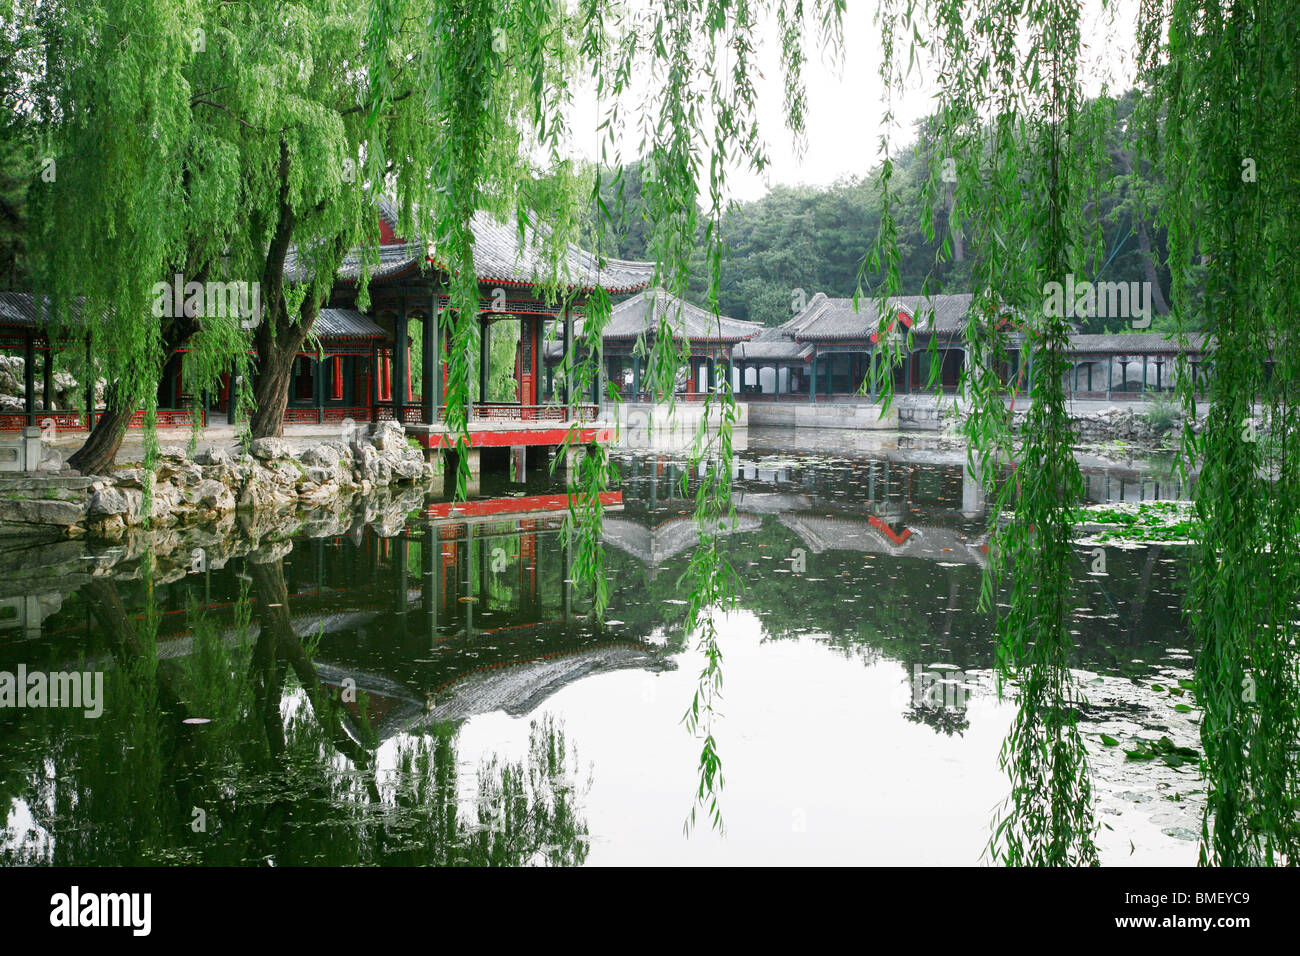 Garden of Harmonious Interests in the Summer Palace, Beijing, China - Stock Image